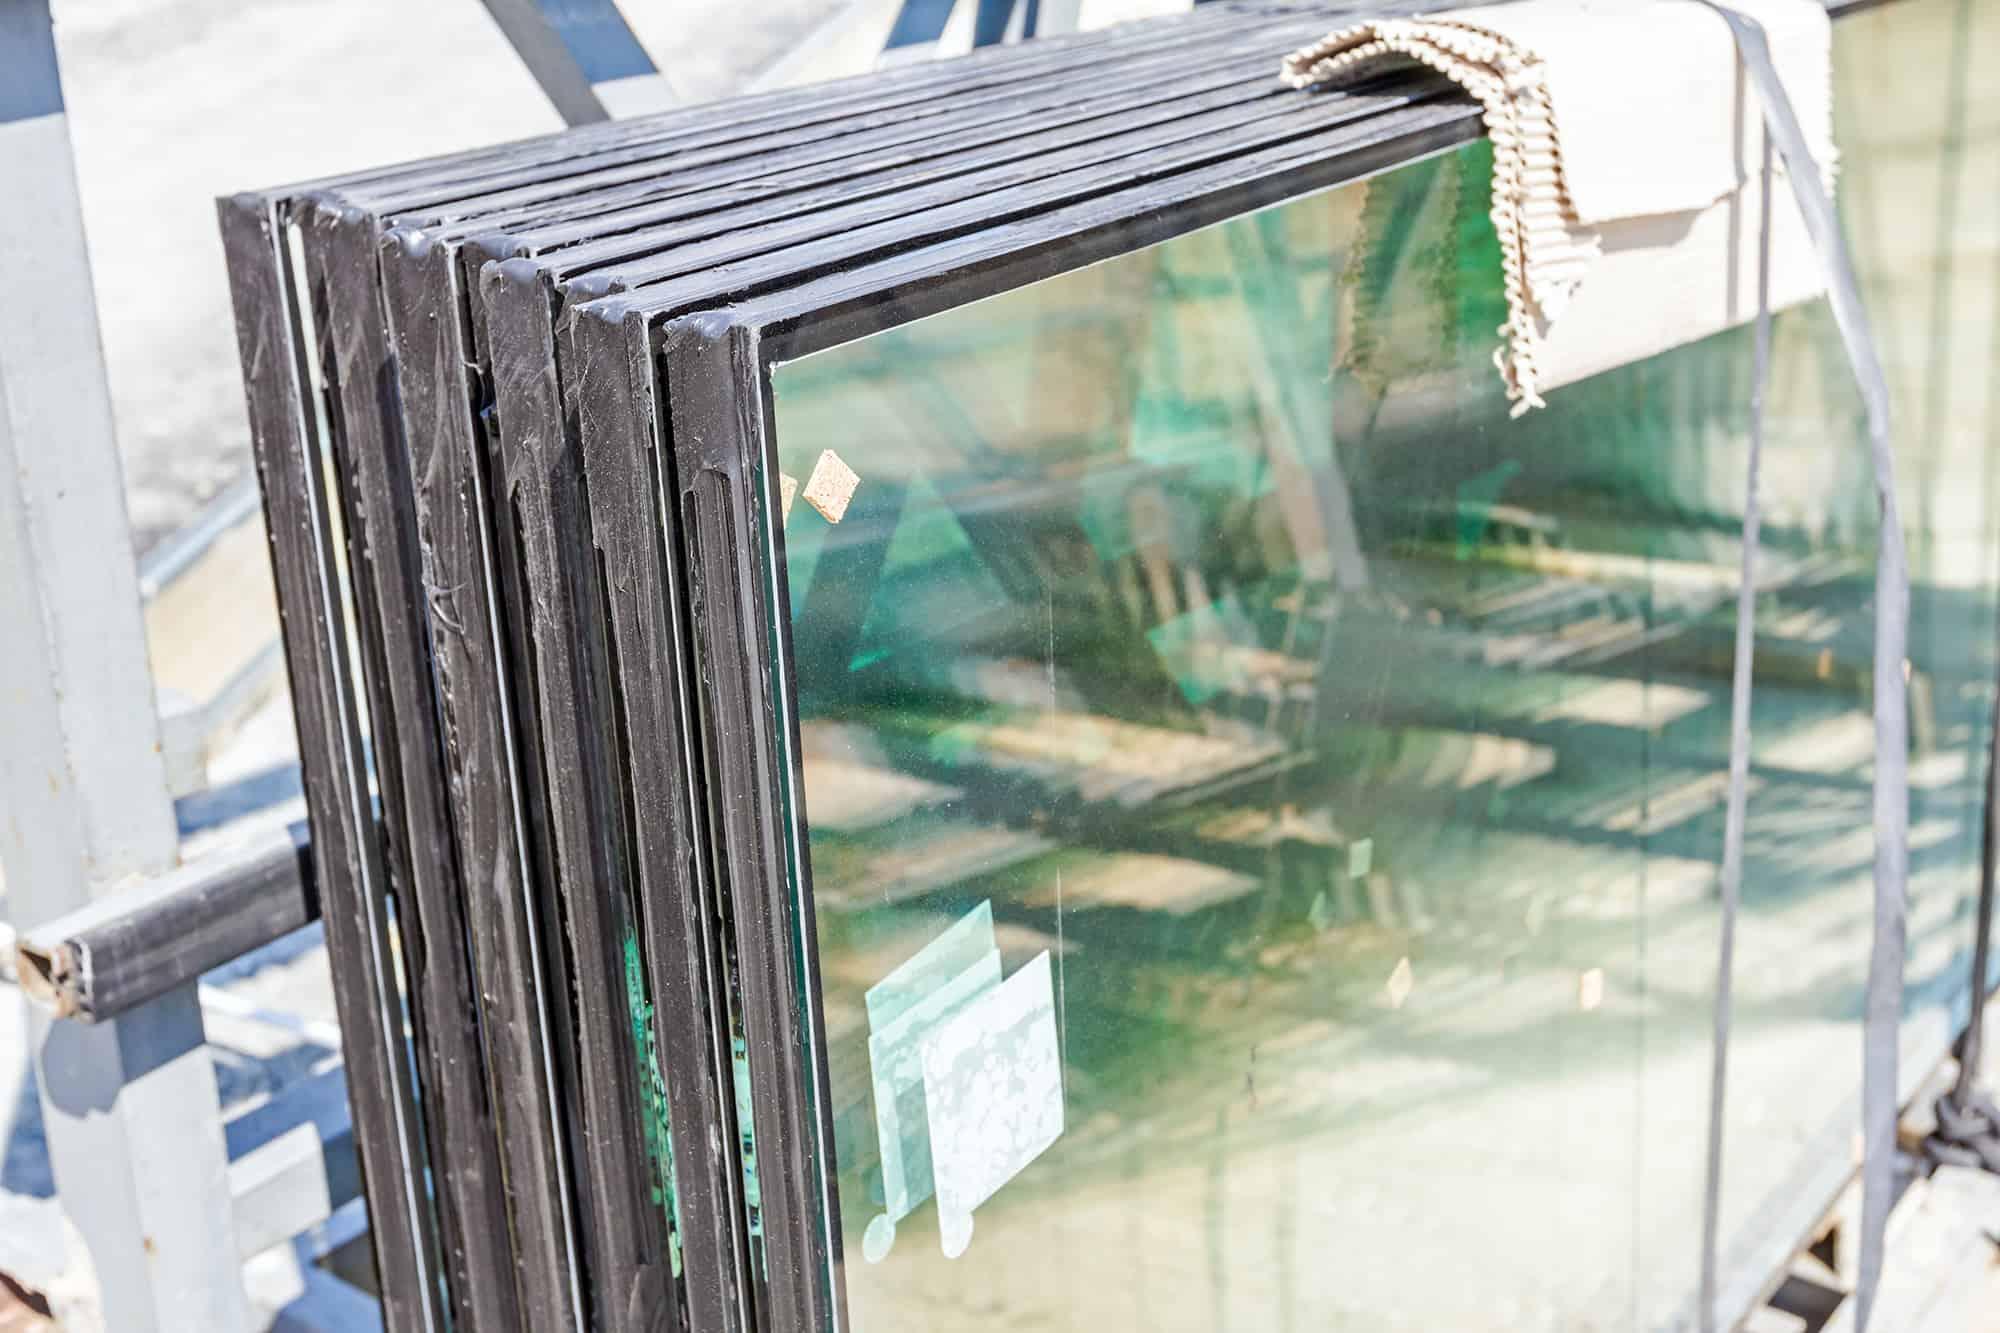 Double glazing window stacks ready to be installed into a window frame